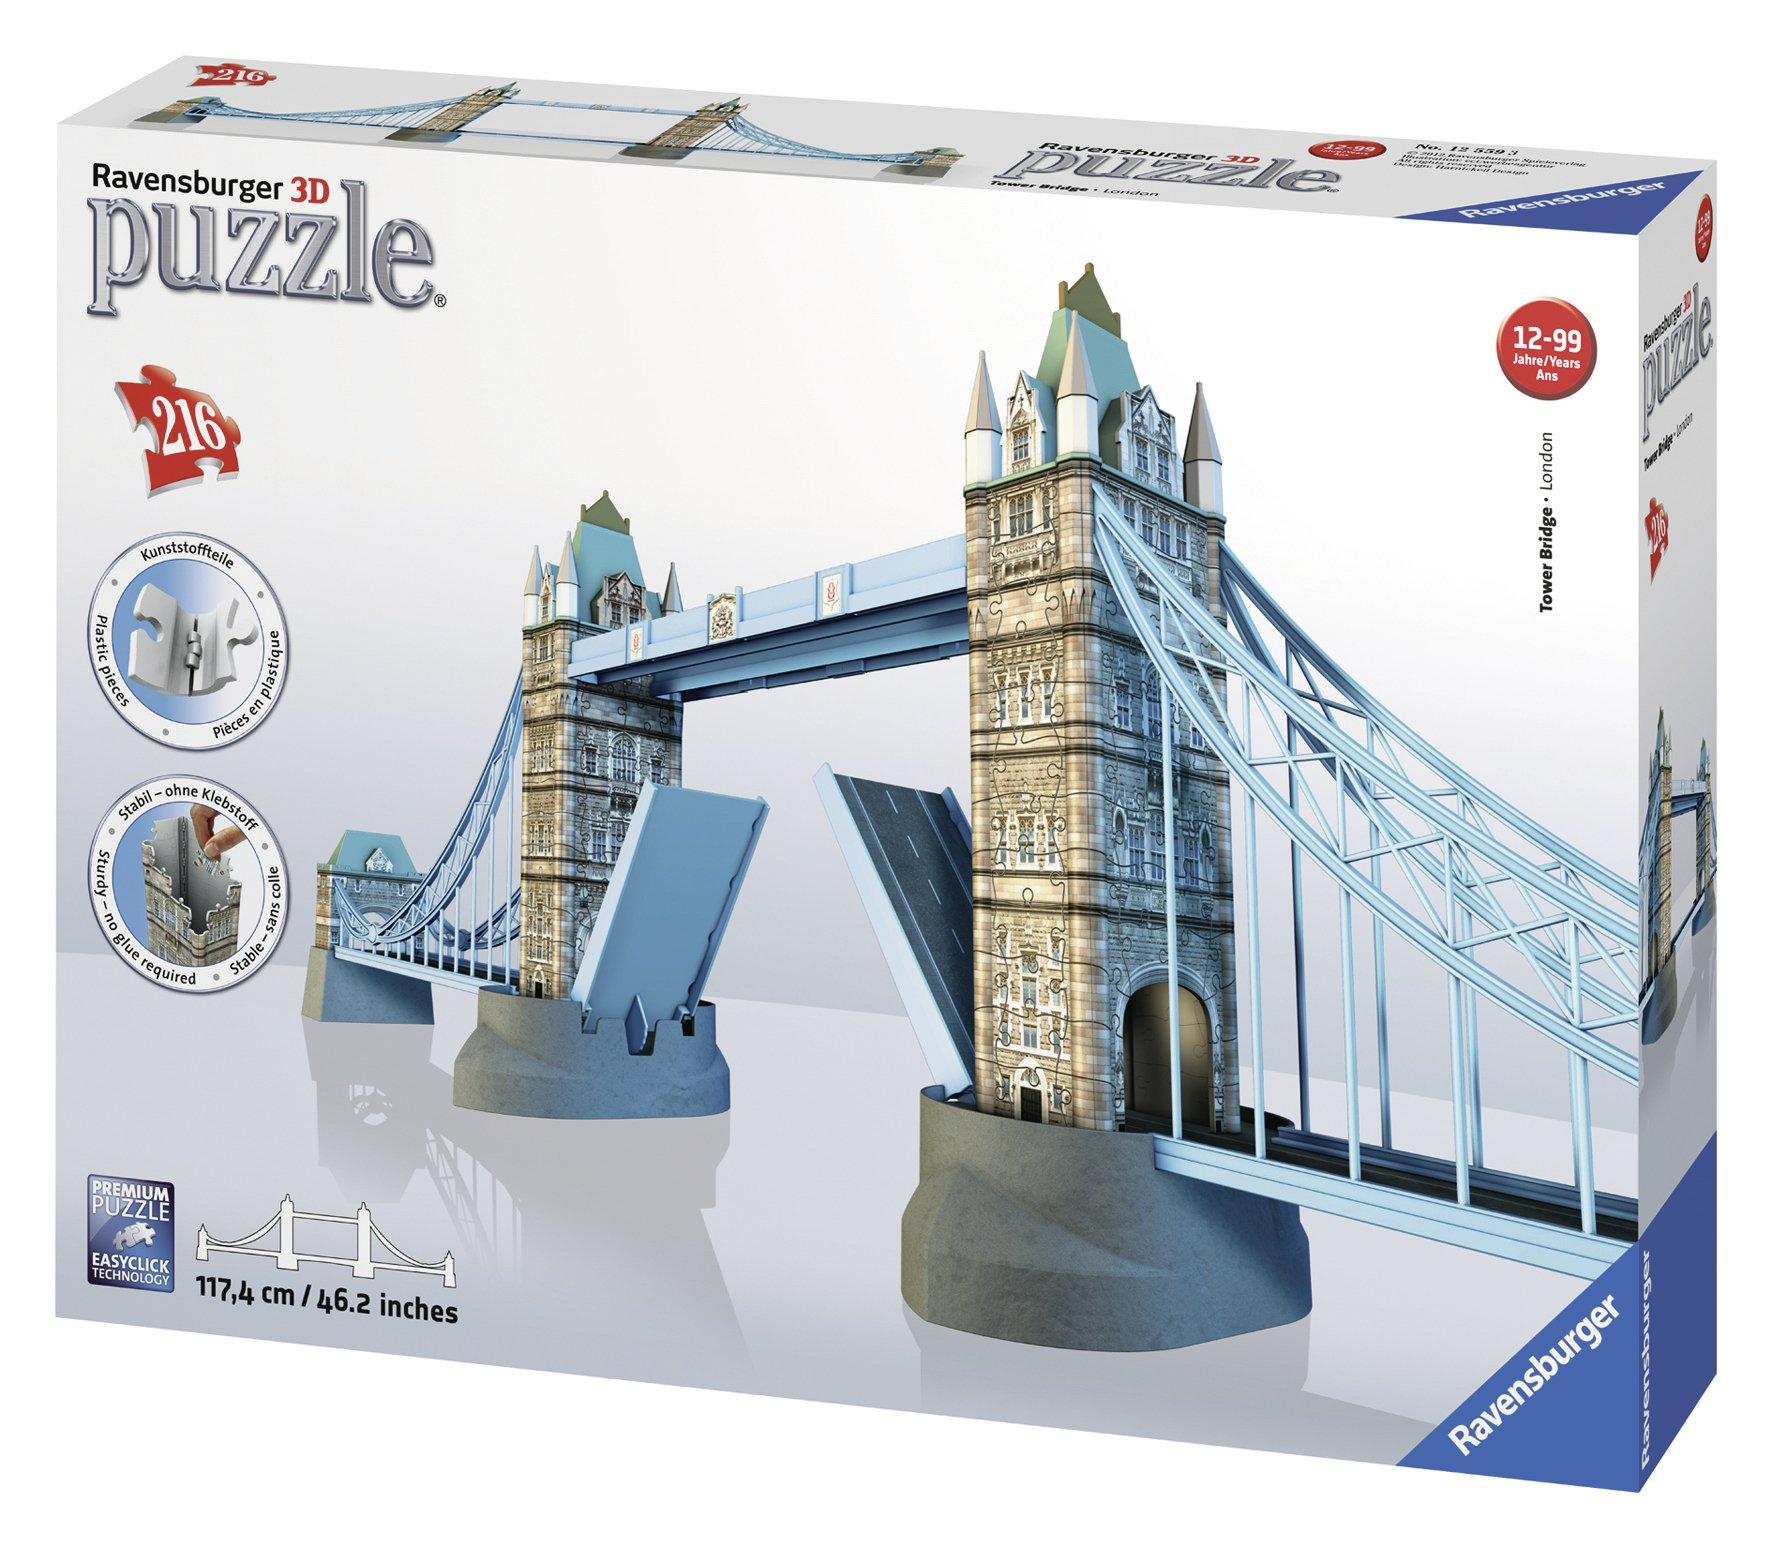 21ac9b6b406 Get Quotations · Ravensburger Tower Bridge 216 Piece 3D Jigsaw Puzzle for  Kids and Adults - Easy Click Technology